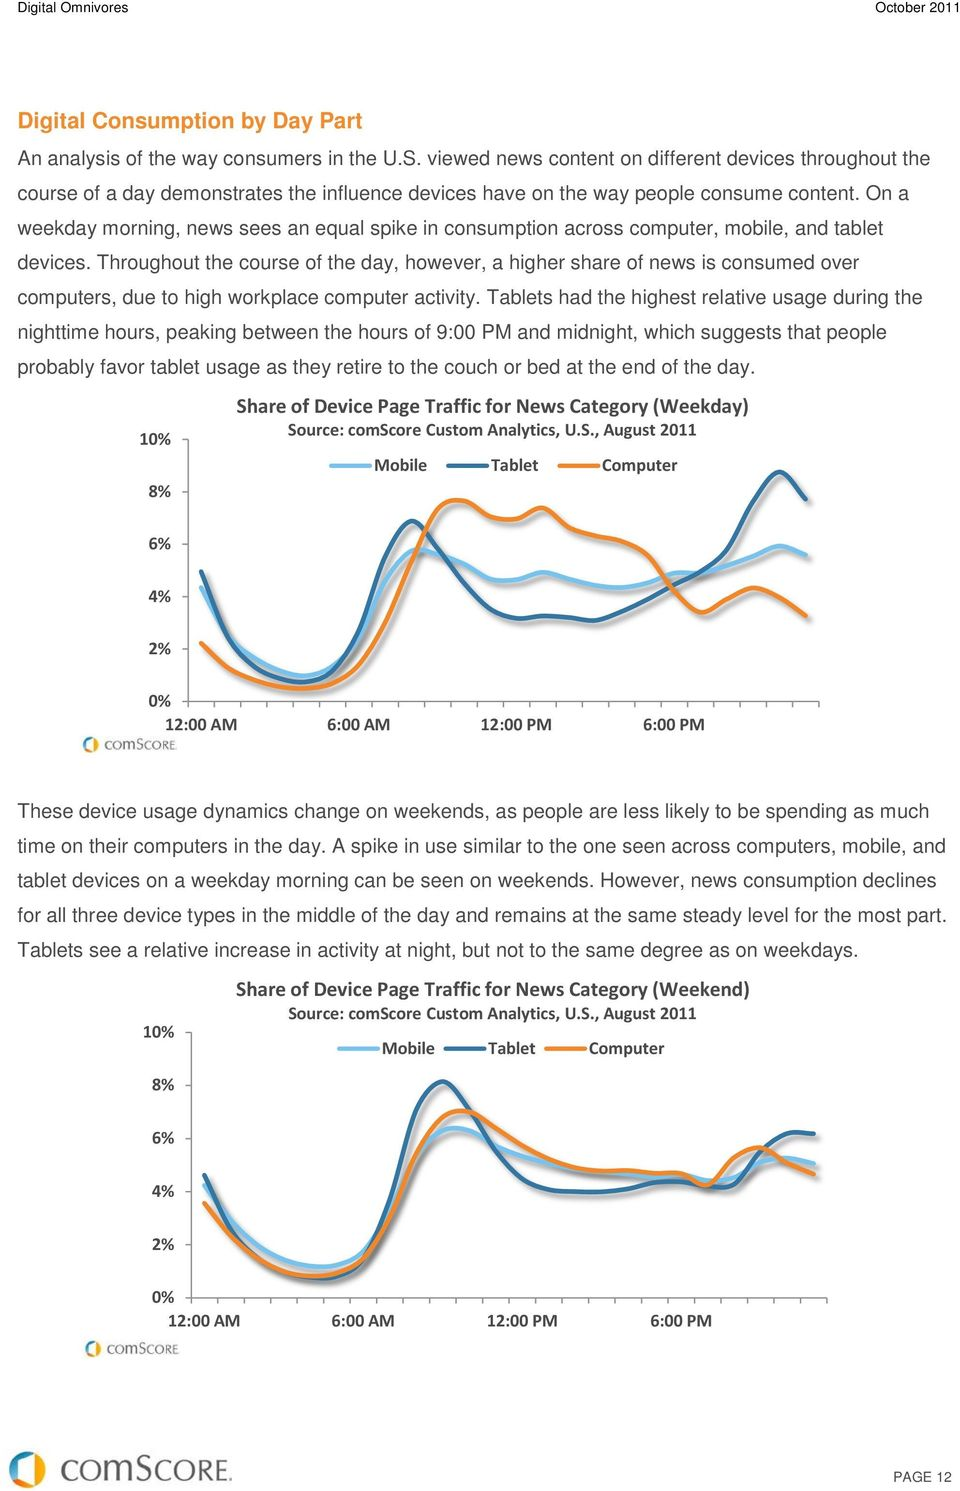 On a weekday morning, news sees an equal spike in consumption across computer, mobile, and tablet devices.